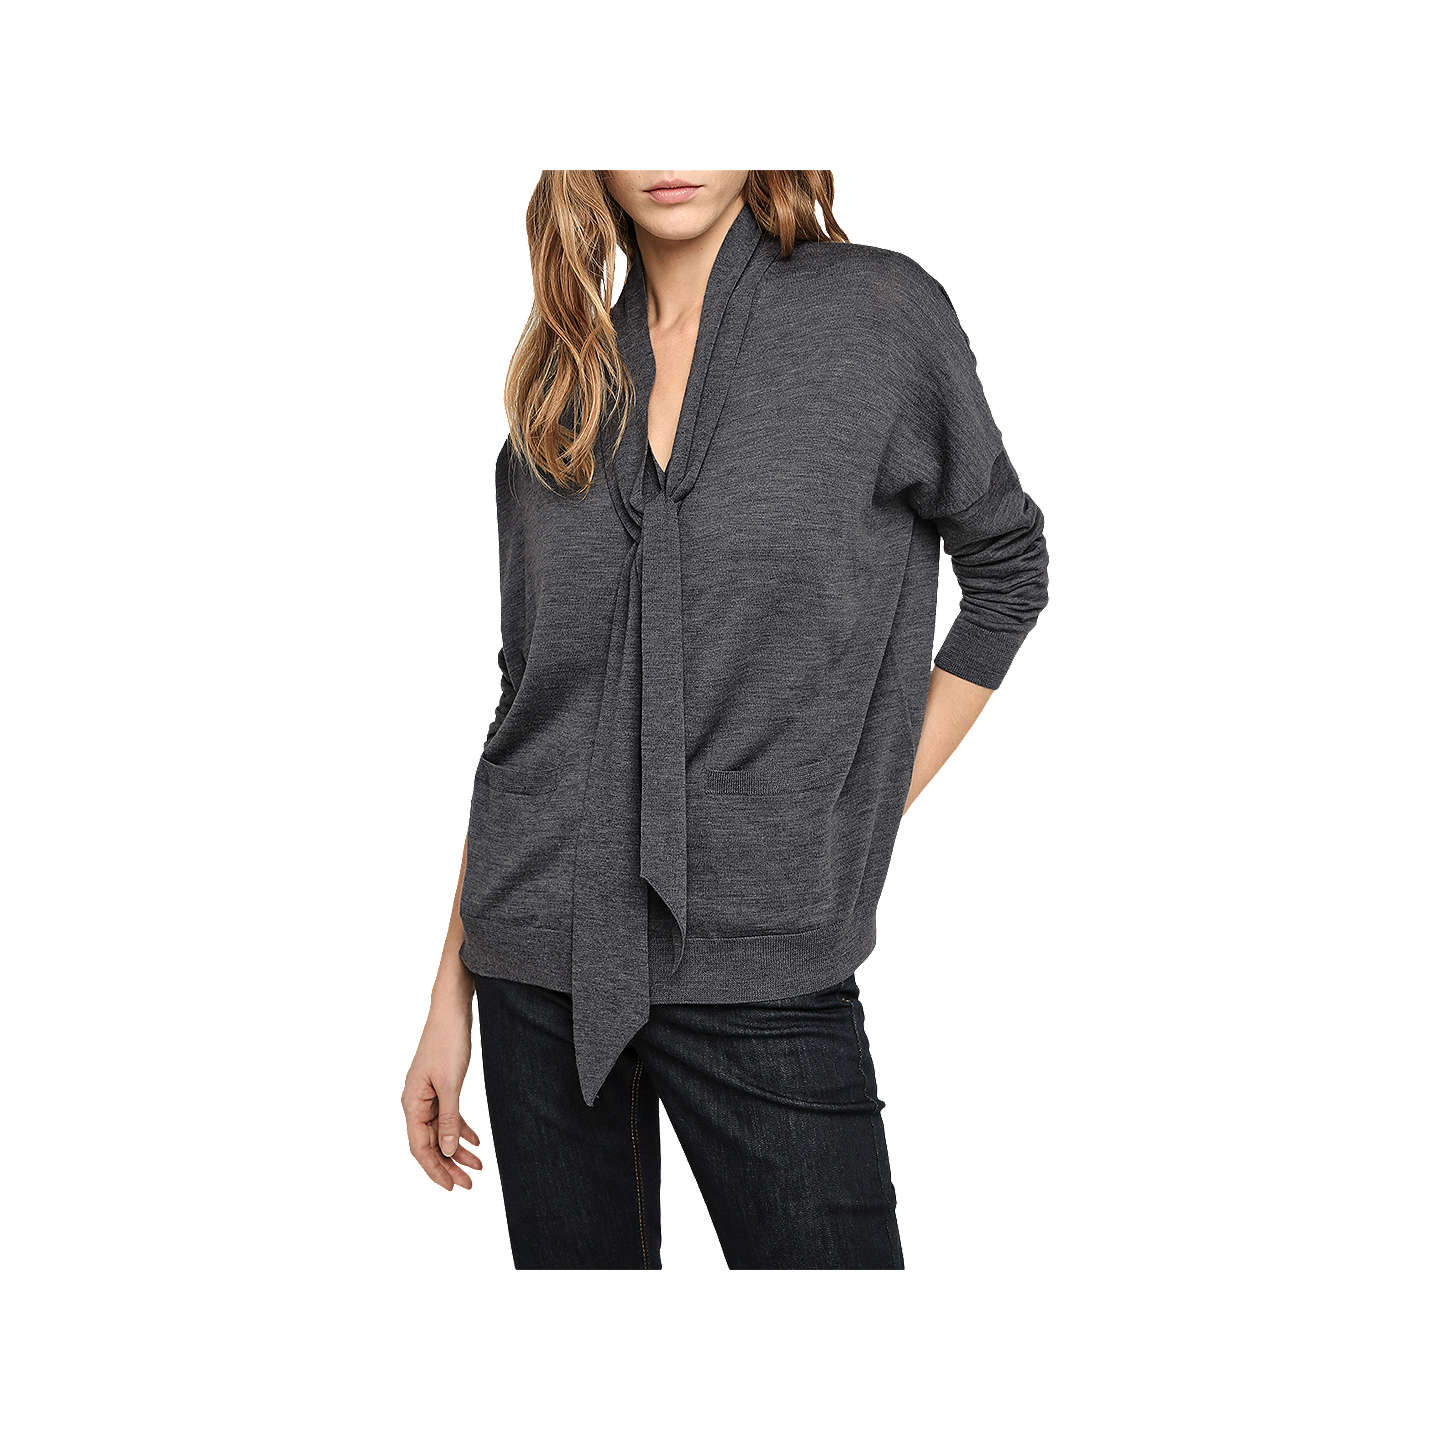 BuyGerard Darel Tie Neck Cardigan, Dark Grey, 8-10 Online at johnlewis.com